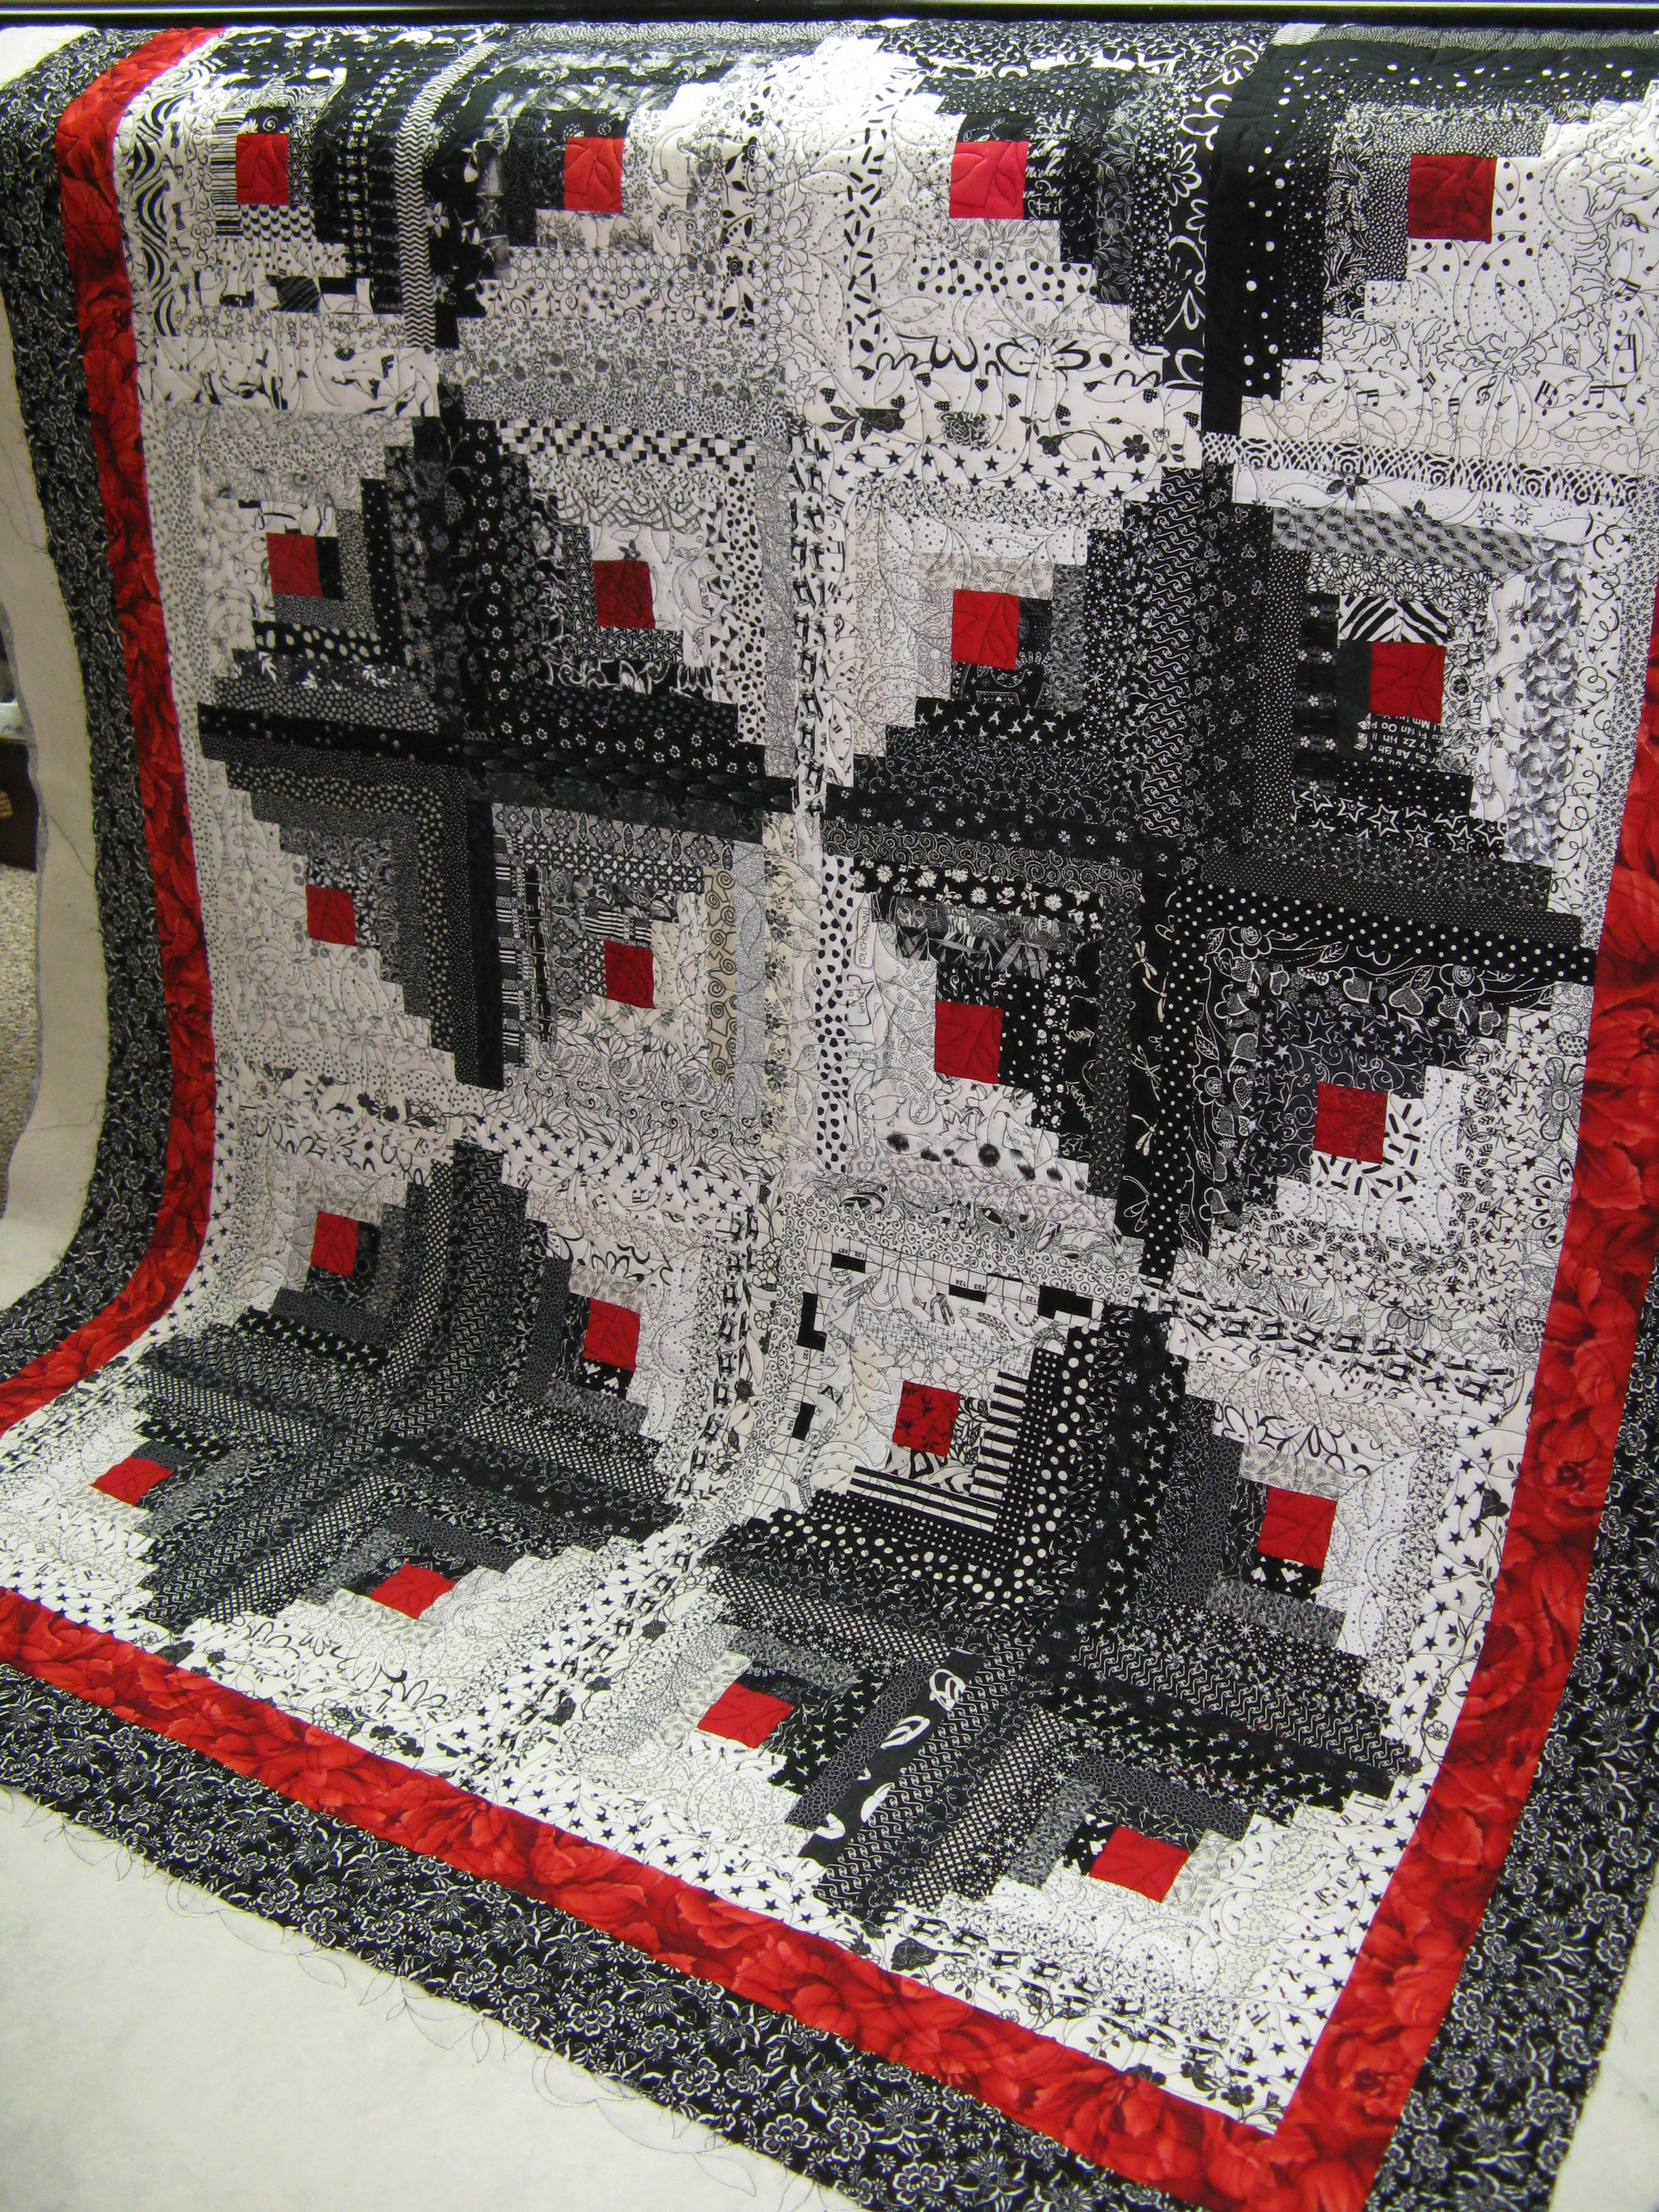 sewmod quilts creeper tutorial minecraft quilt black diy